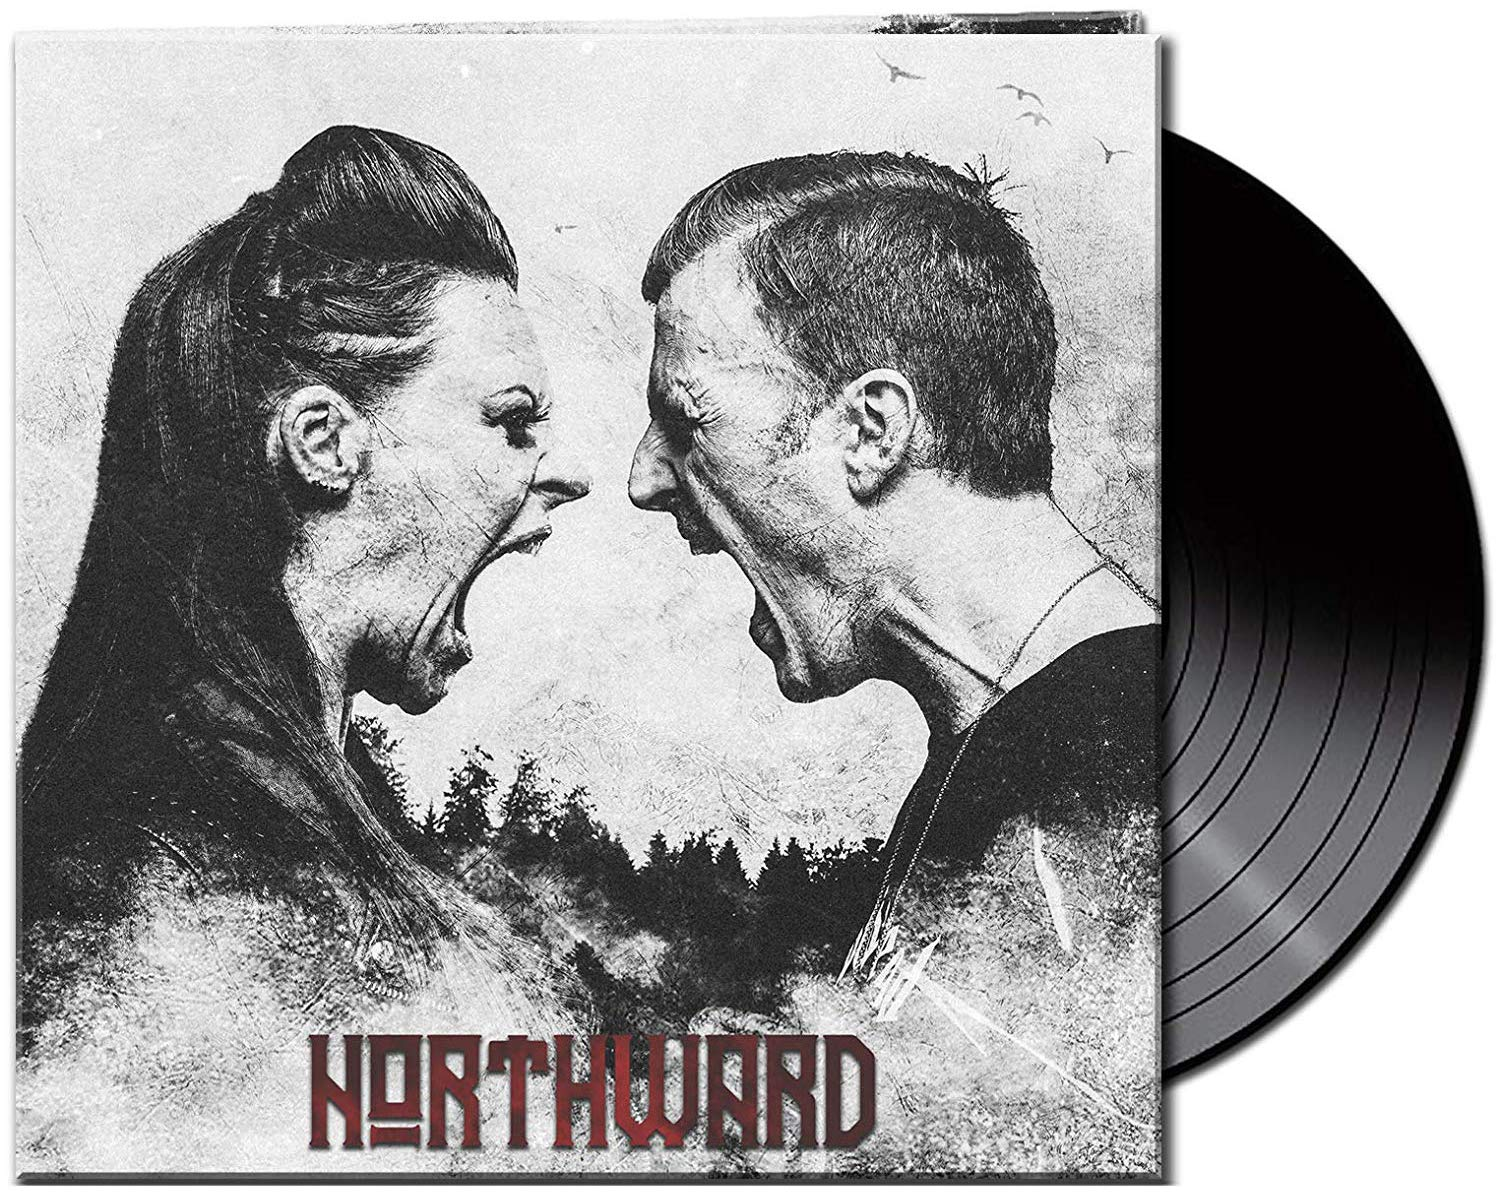 Vinilo : Northward - Northward (black Vinyl) (Black, Limited Edition, Gatefold LP Jacket)